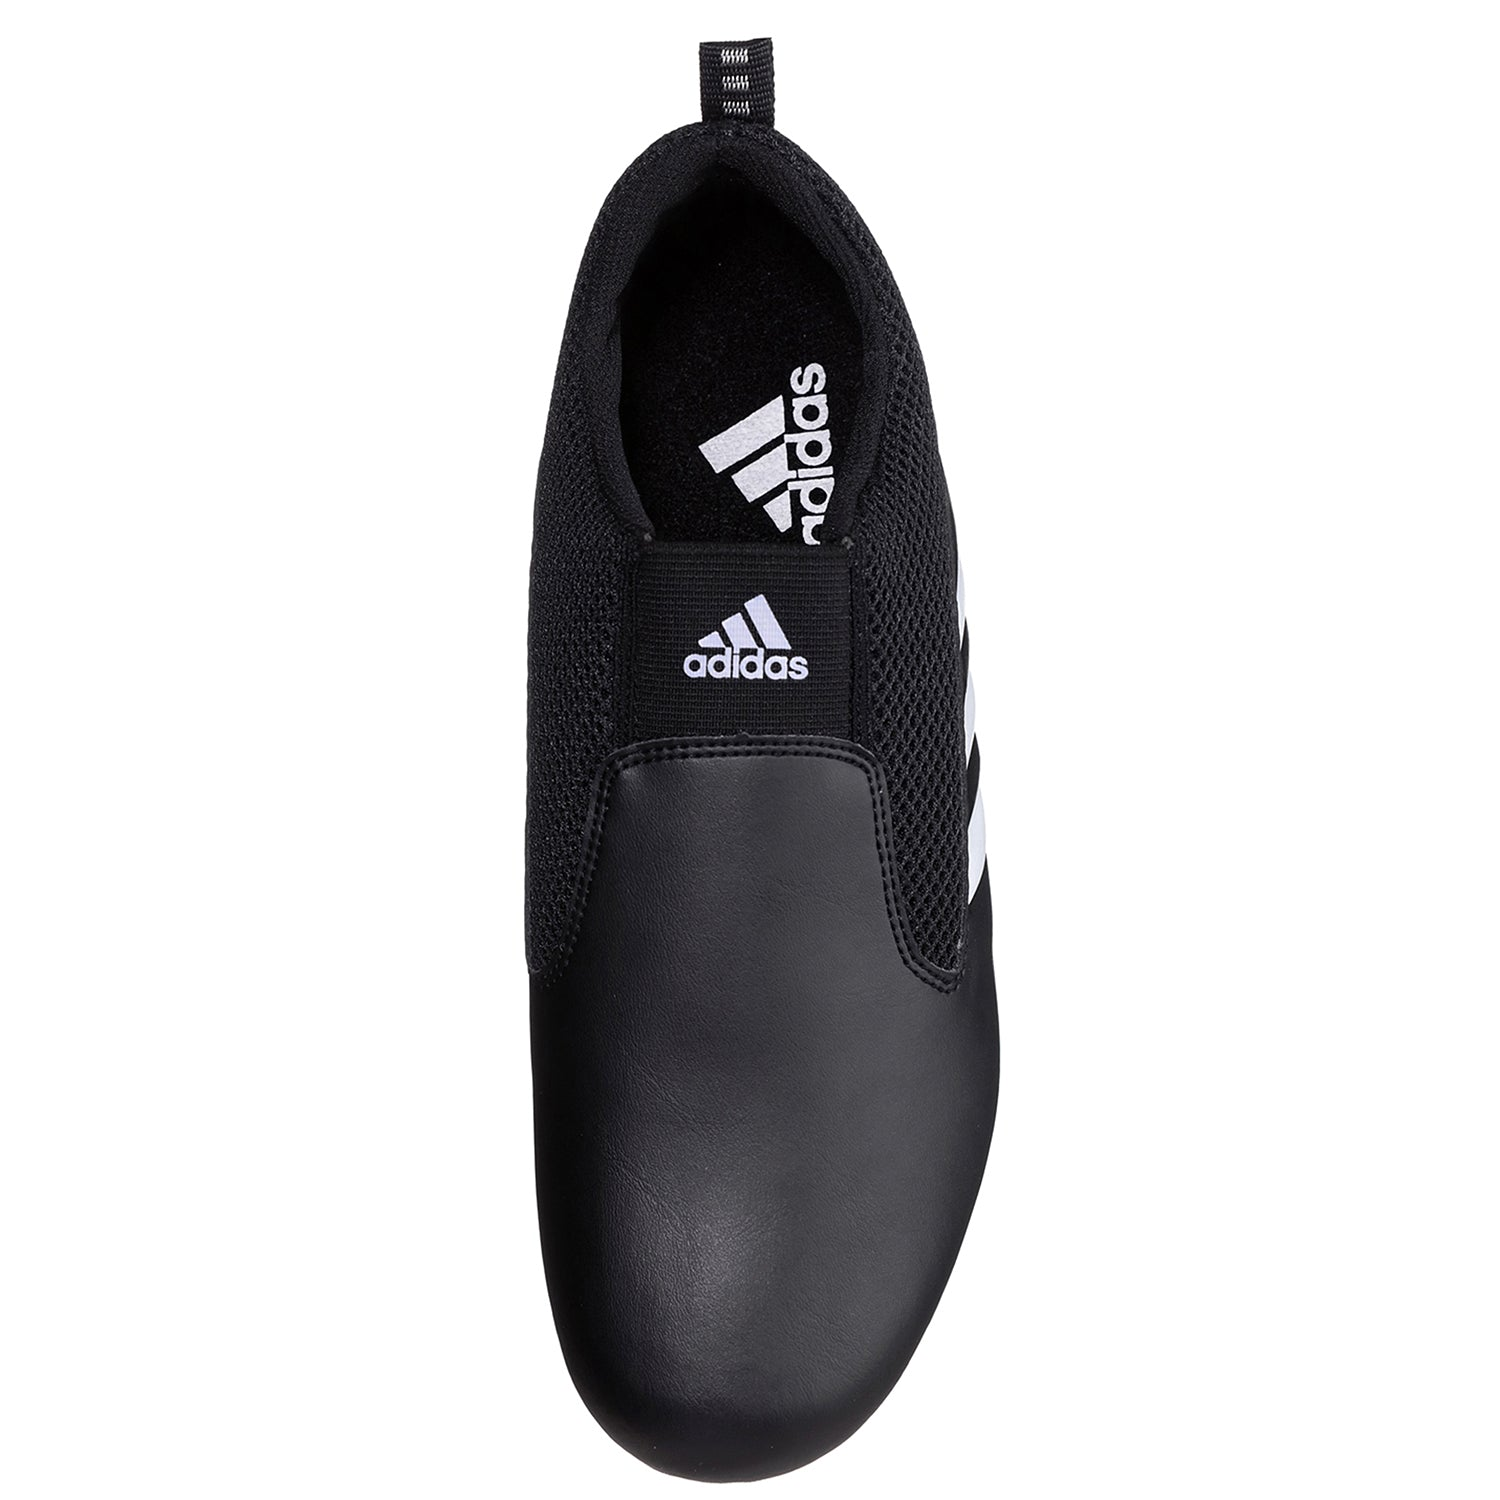 ALL NEW! adidas Contestant Pro Shoe